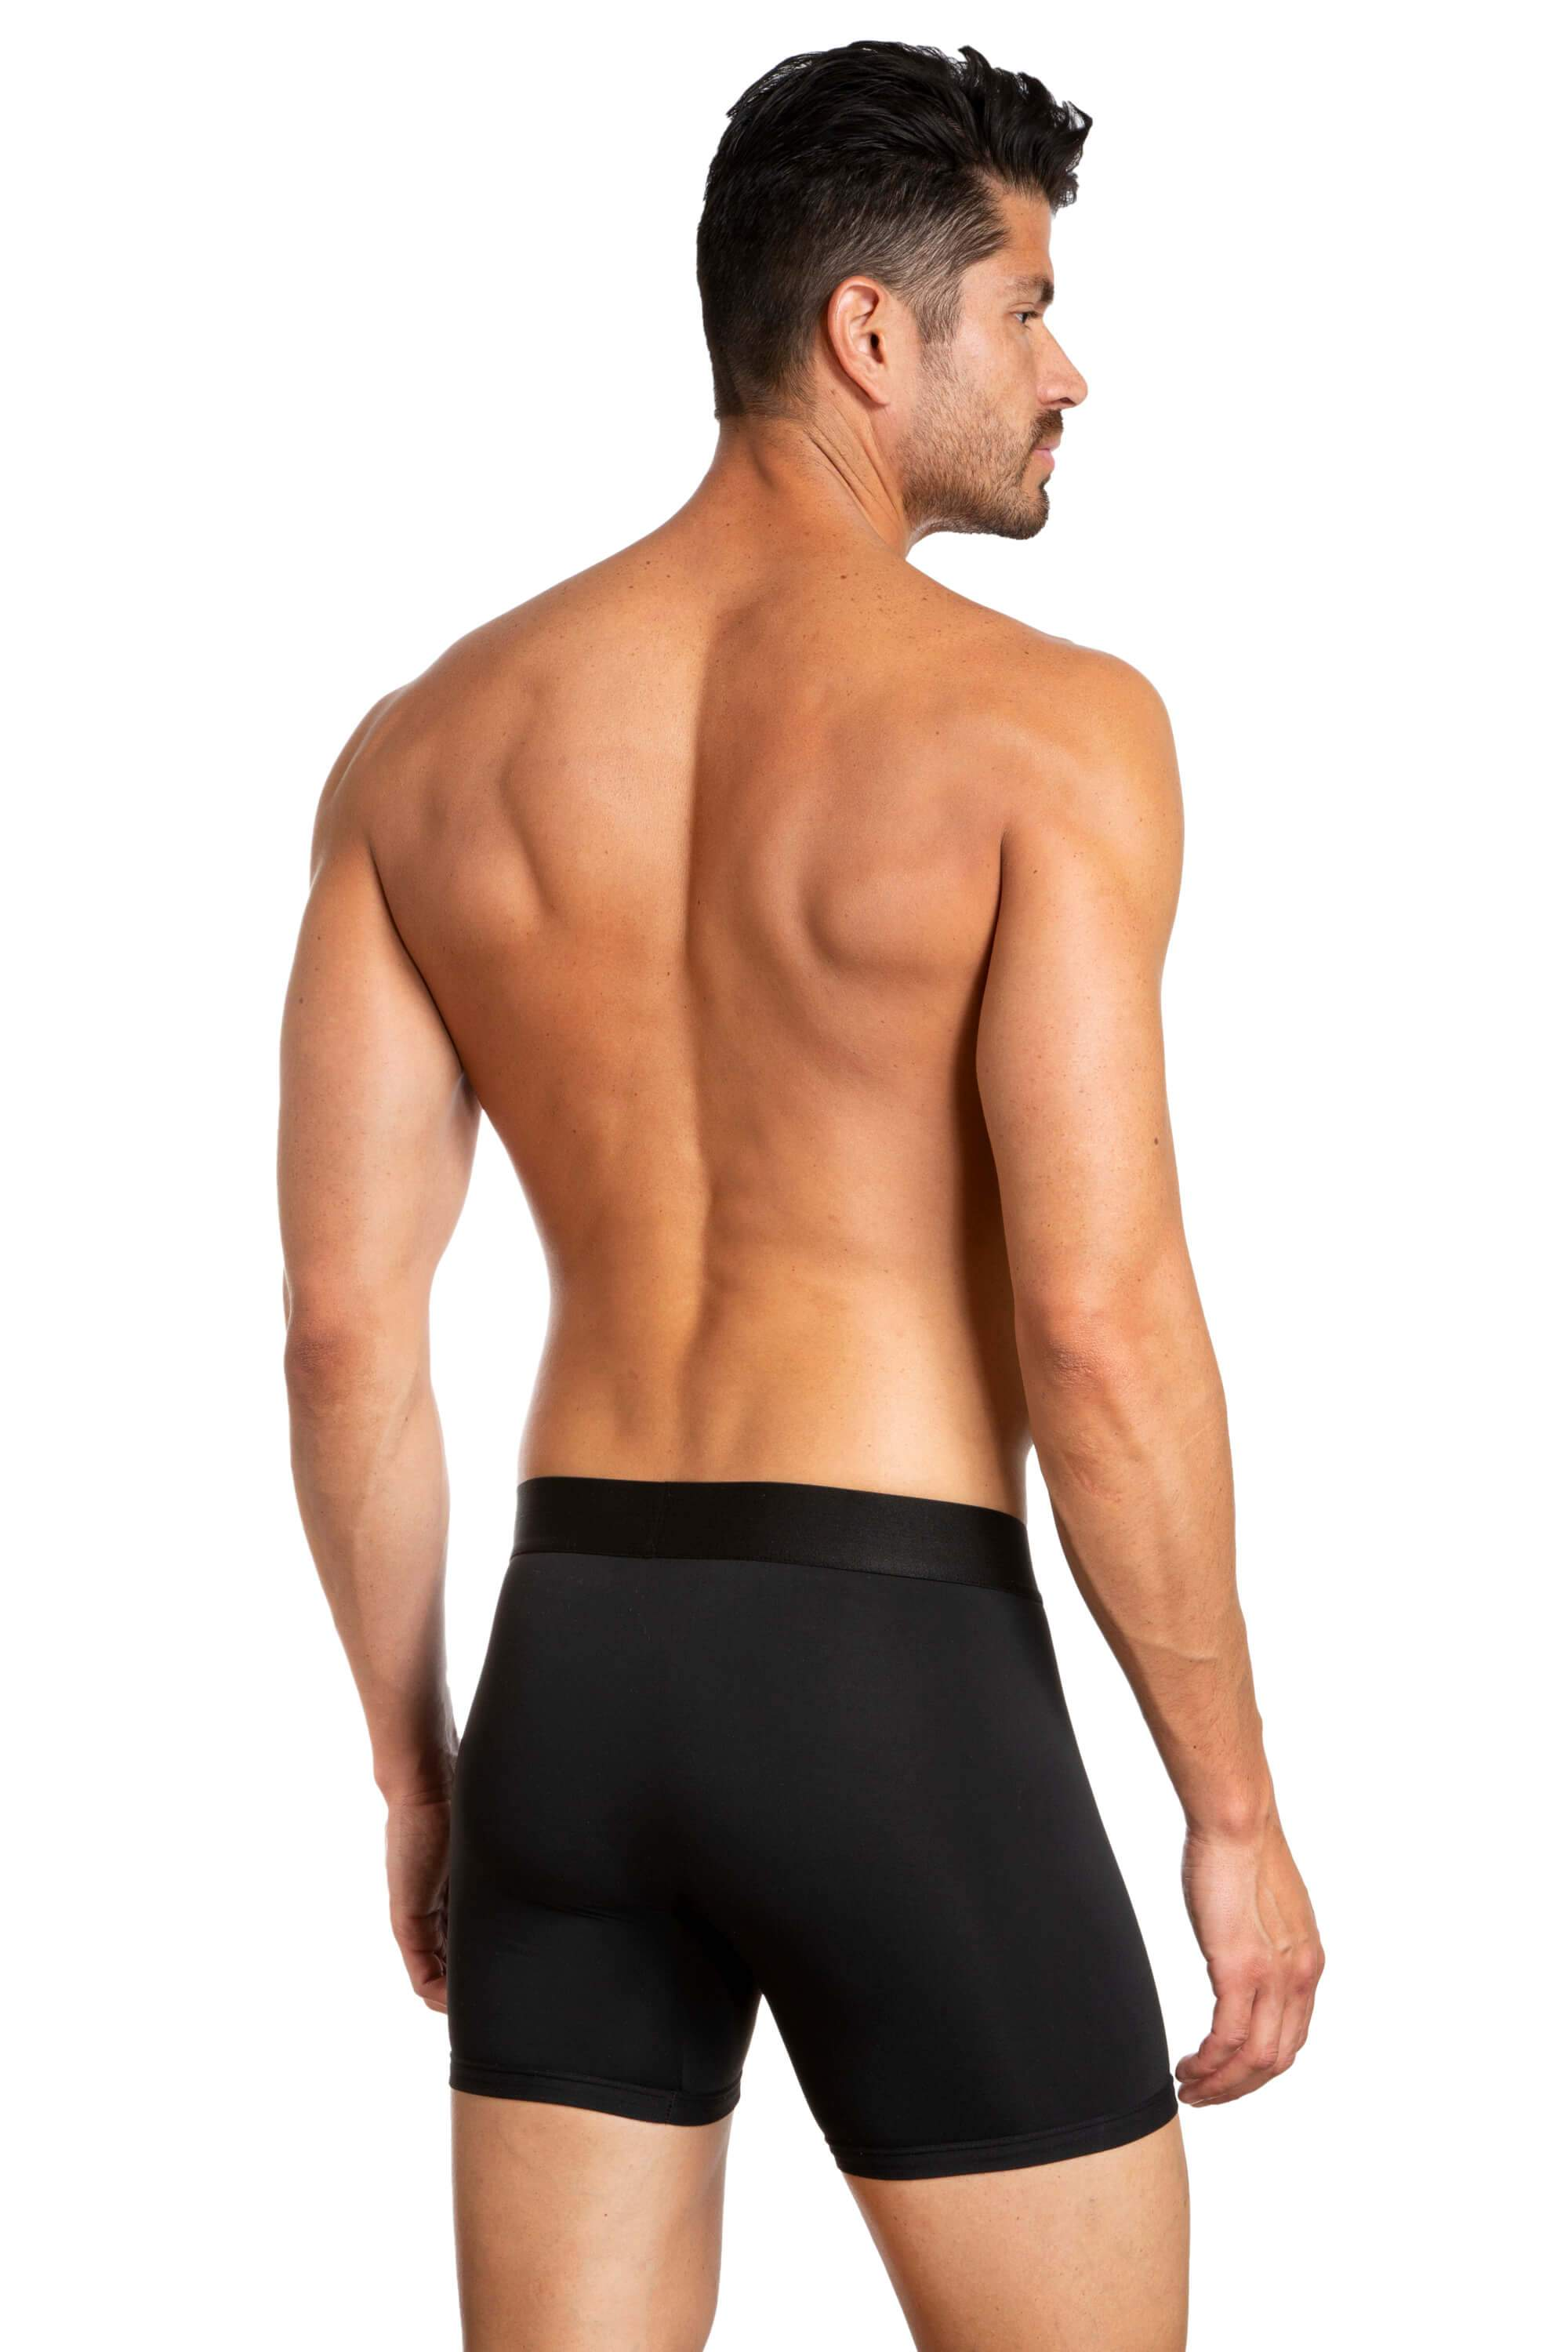 Pack of 3 Boxer Briefs for Men JLBX1-237 - Black and red back - Jared Lang